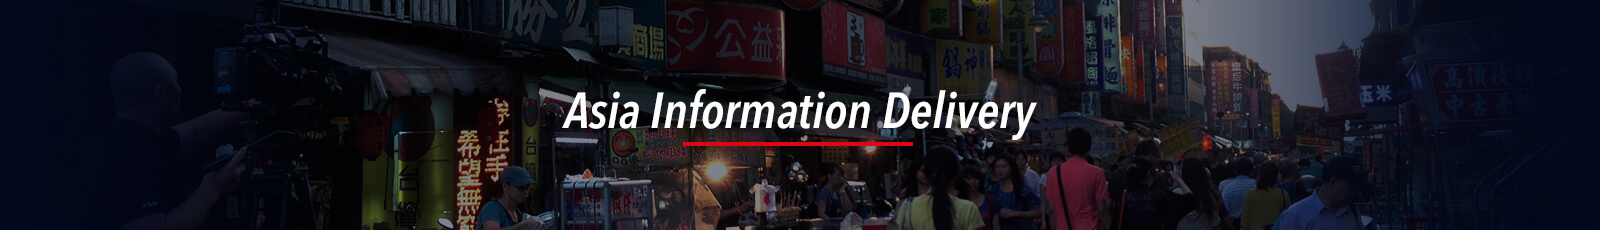 FLY MEDIA Asia Information Delivery